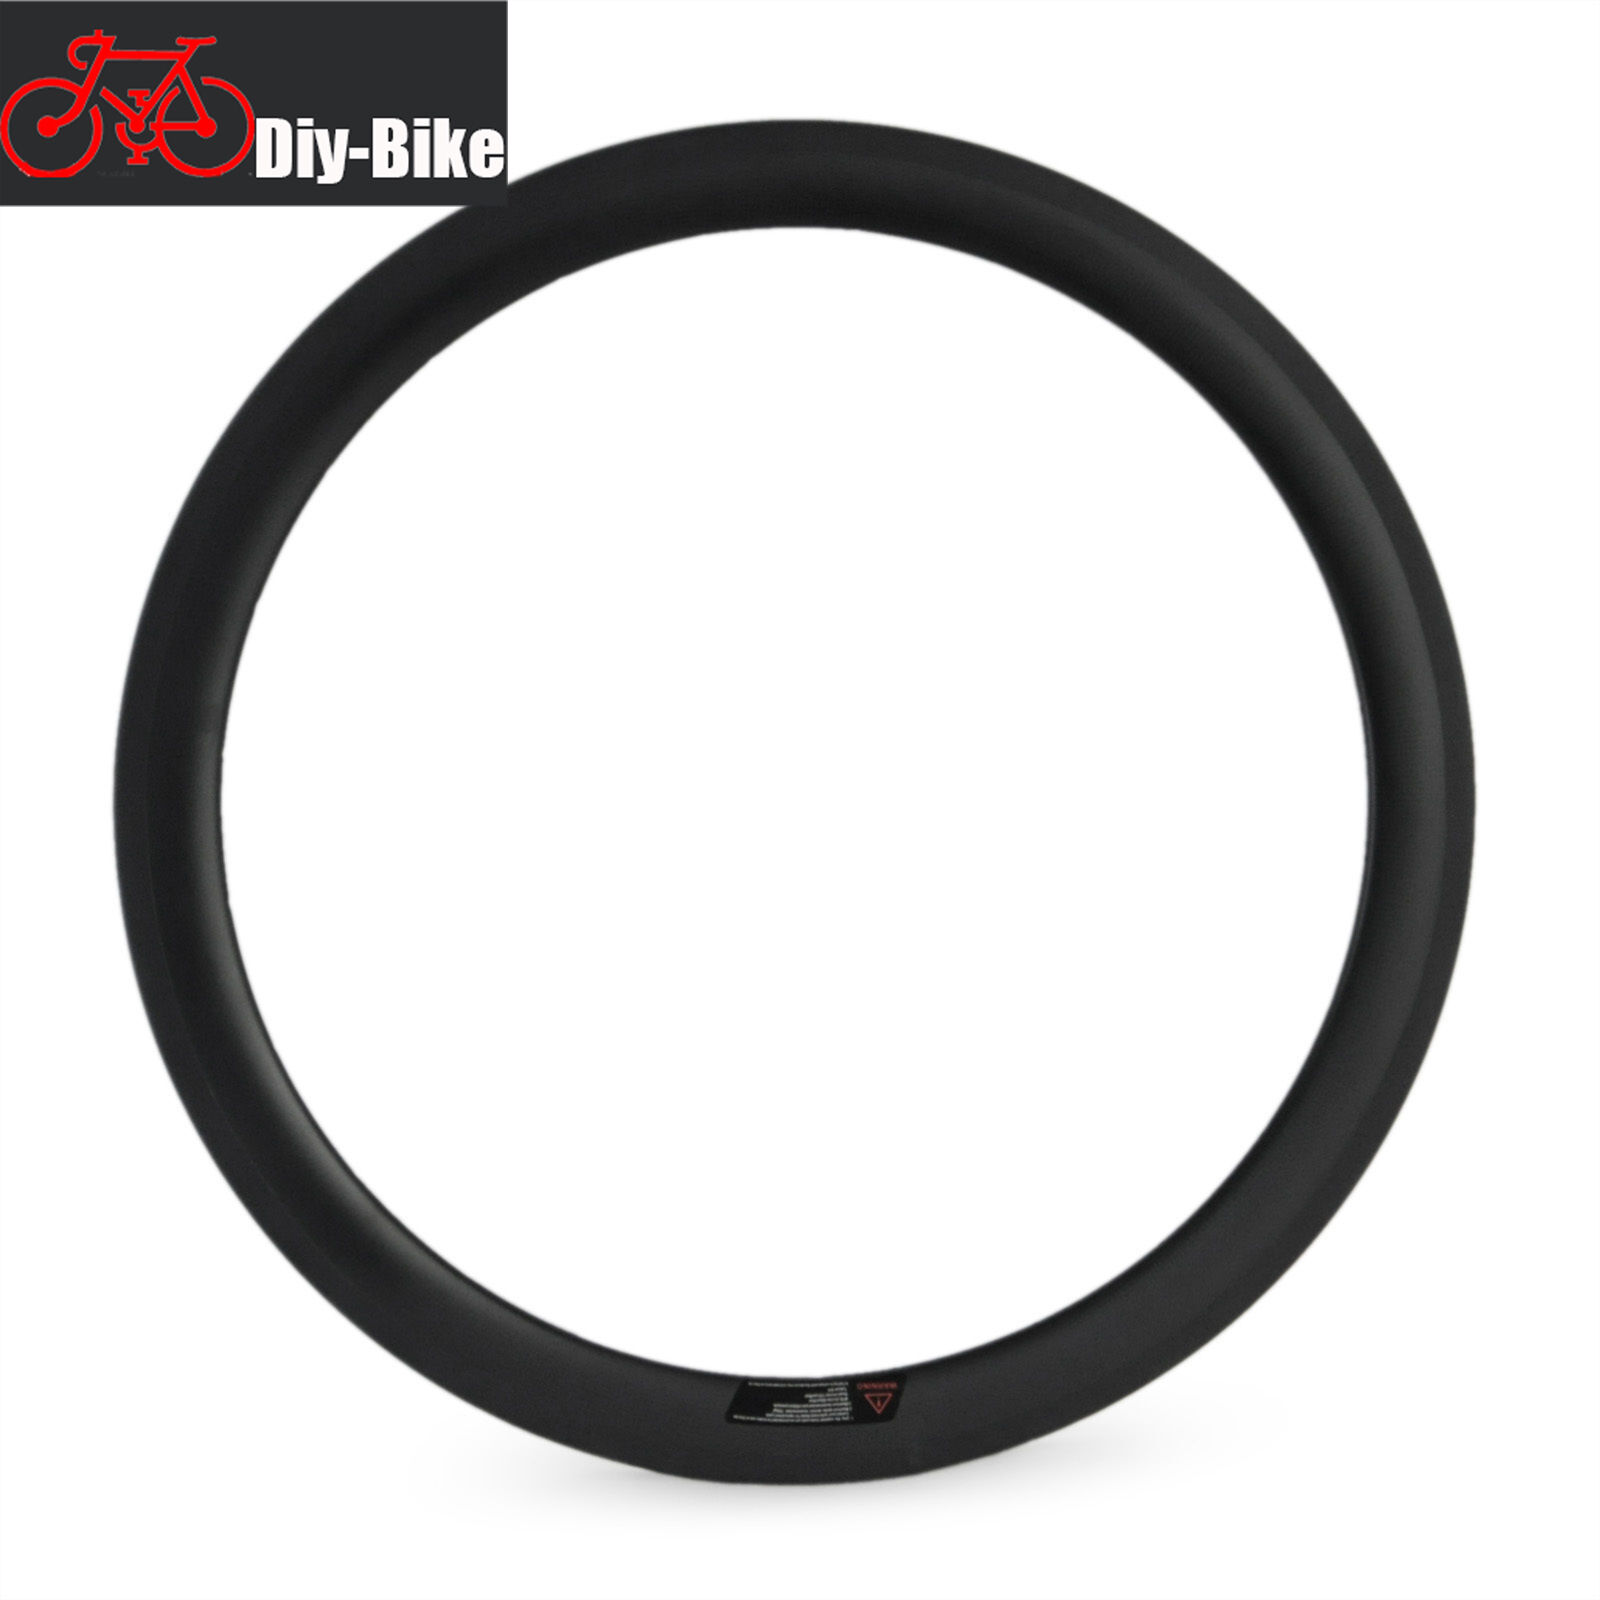 16-32 Holes 50mm Tubular 3K Carbon Rim 700C Carbon Road Bike Bicycle Single Rim